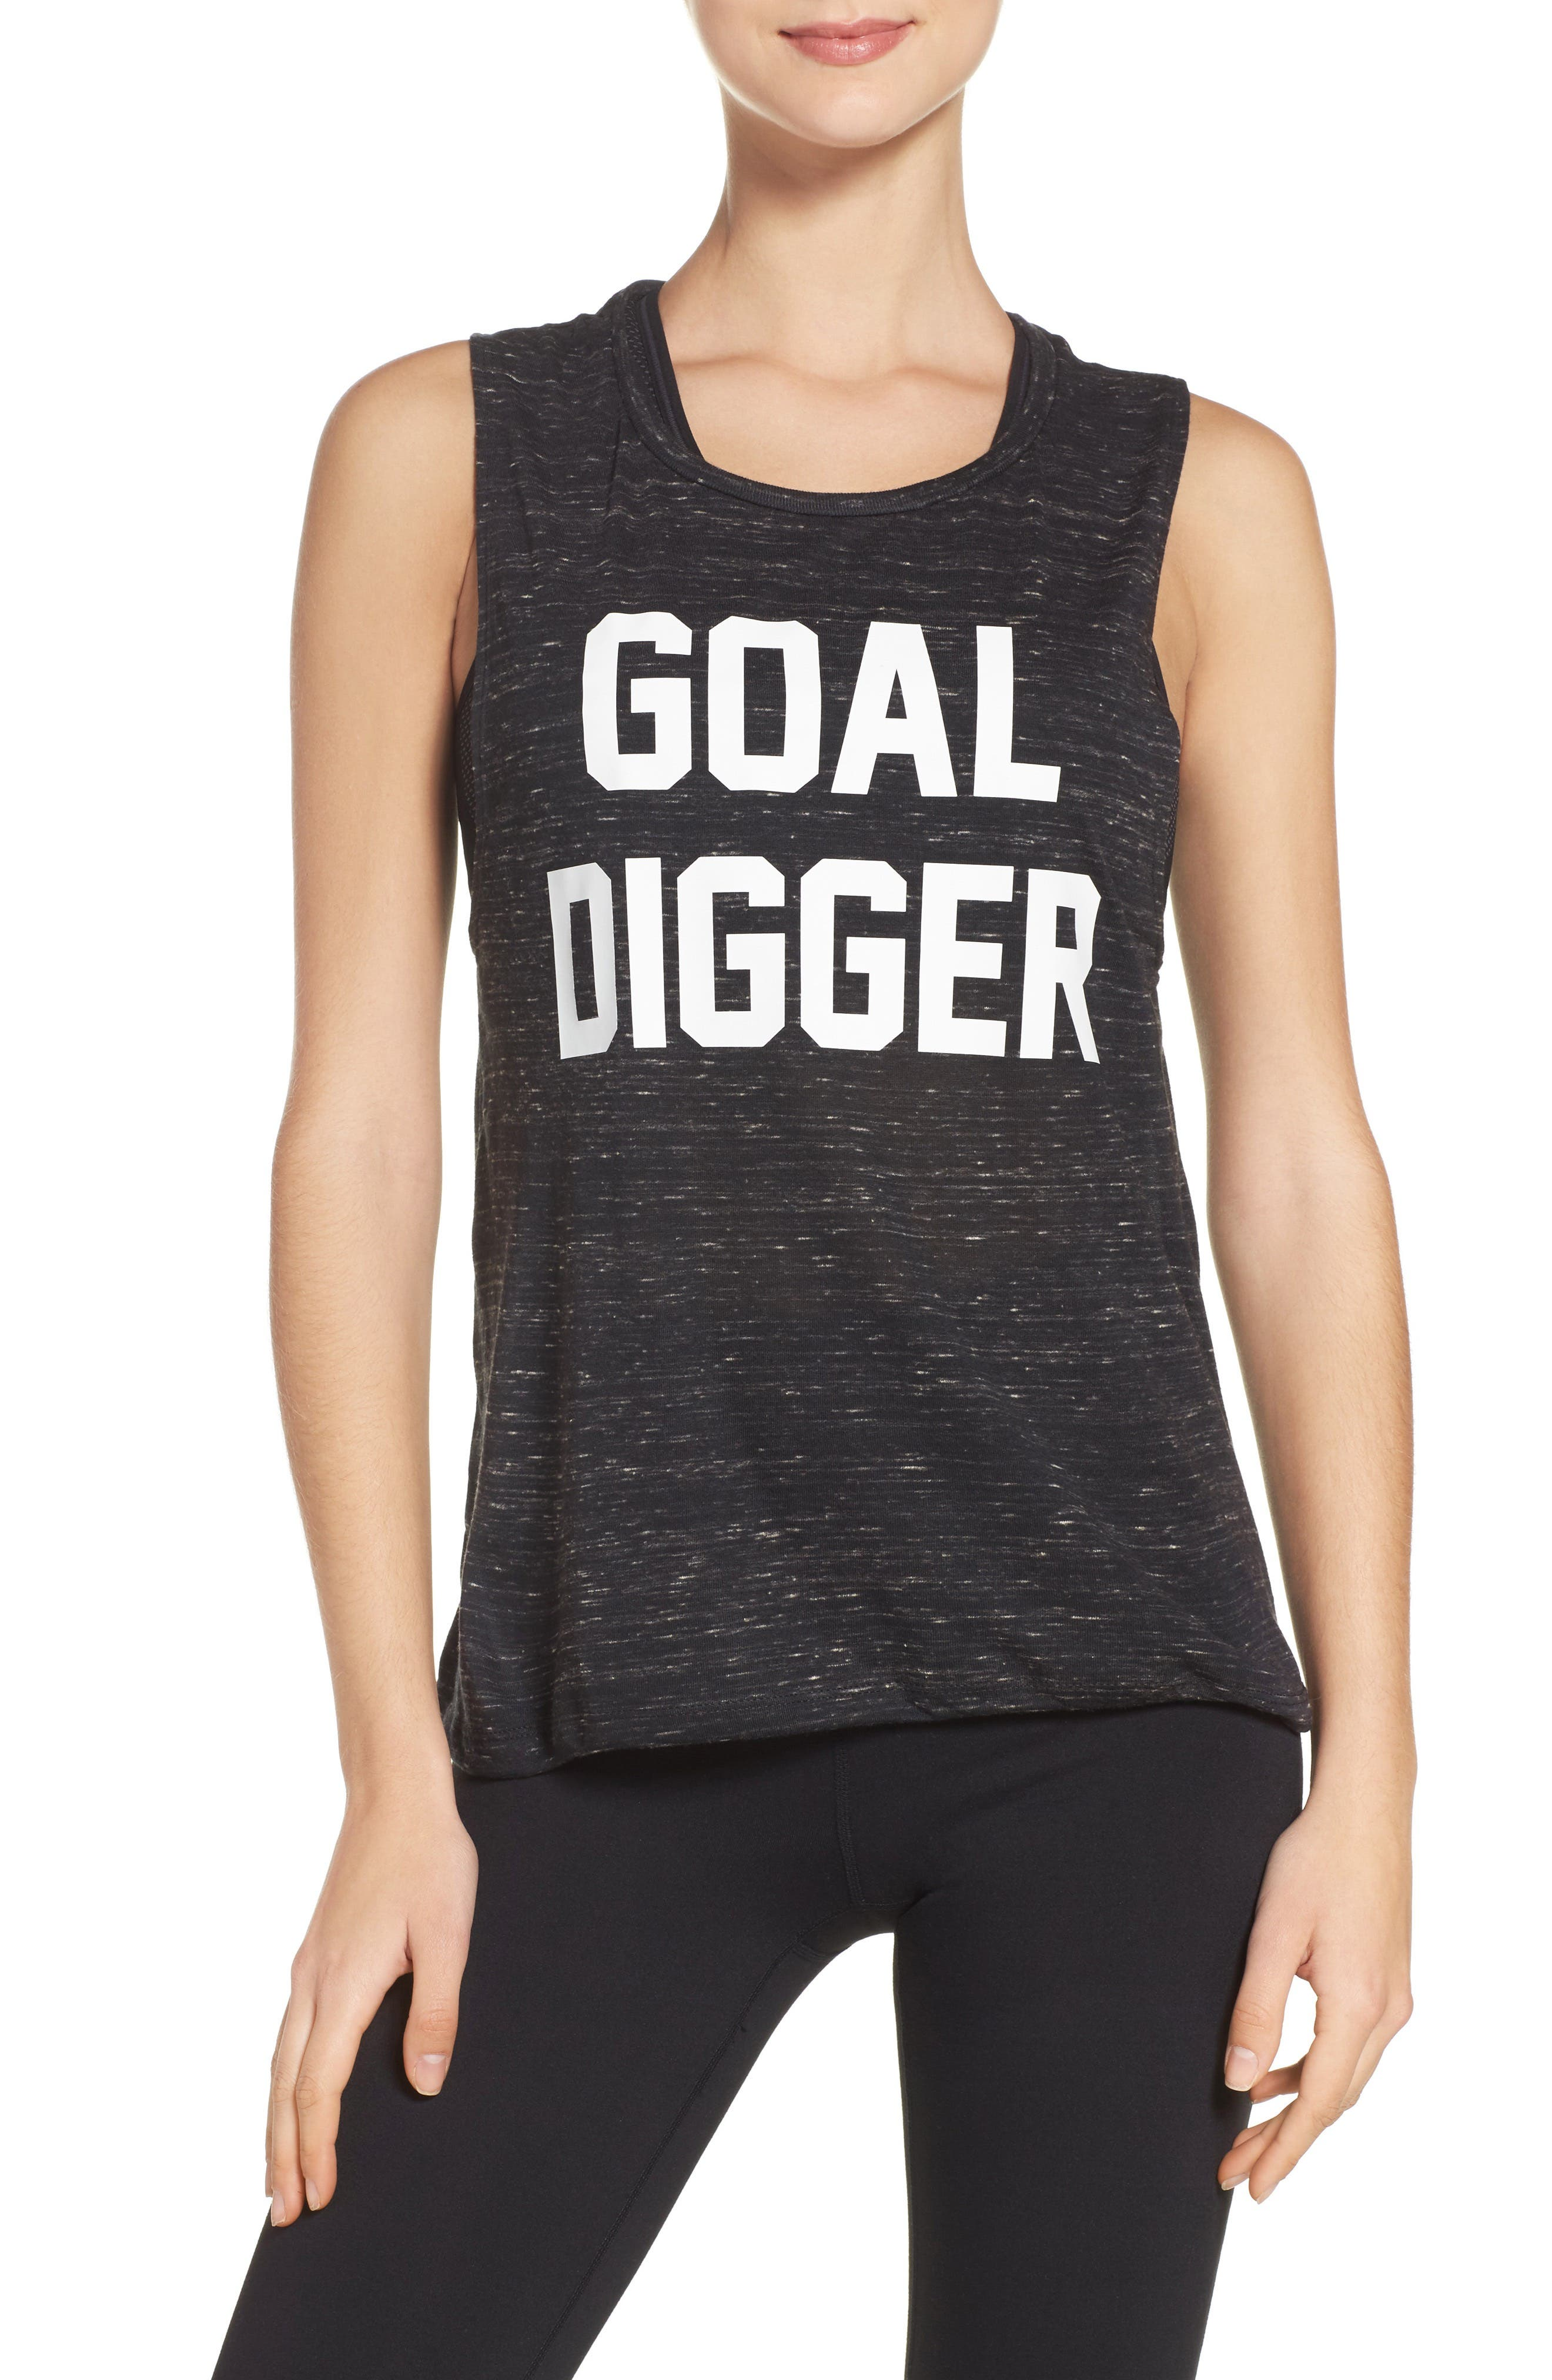 Main Image - Private Party Goal Digger Tank